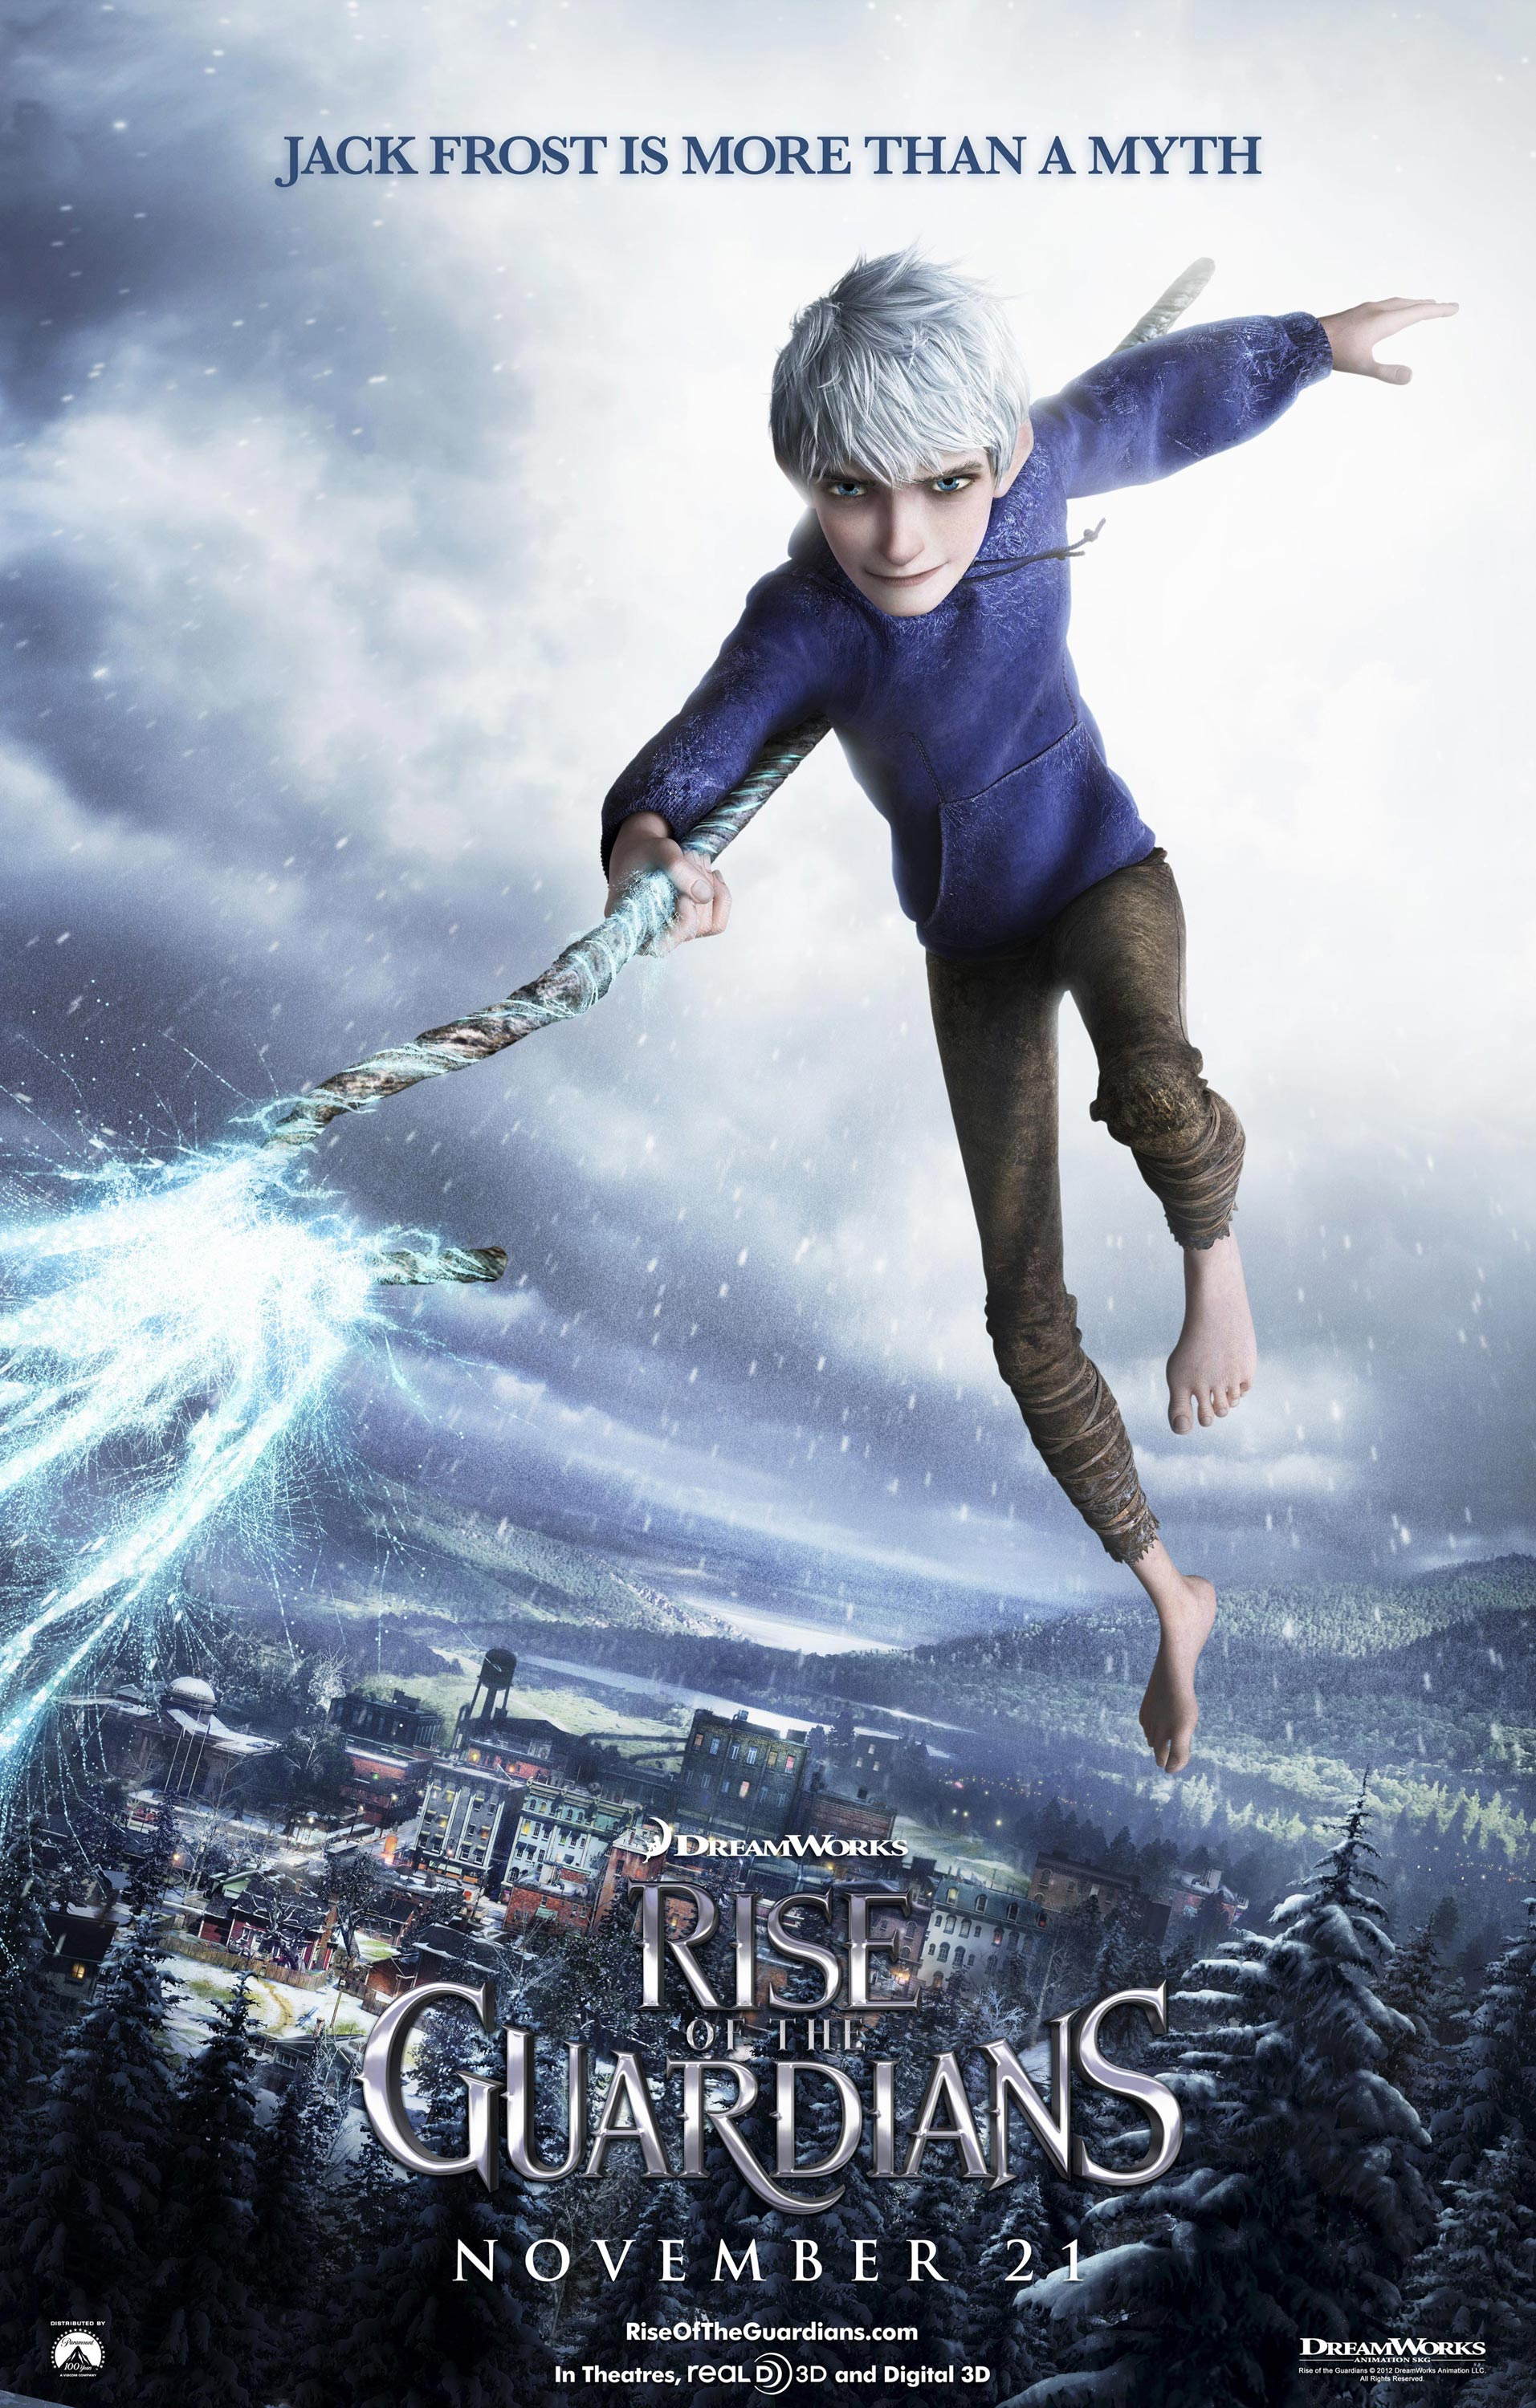 Six rise of the guardians character posters filmofilia - Pics of rise of the guardians ...